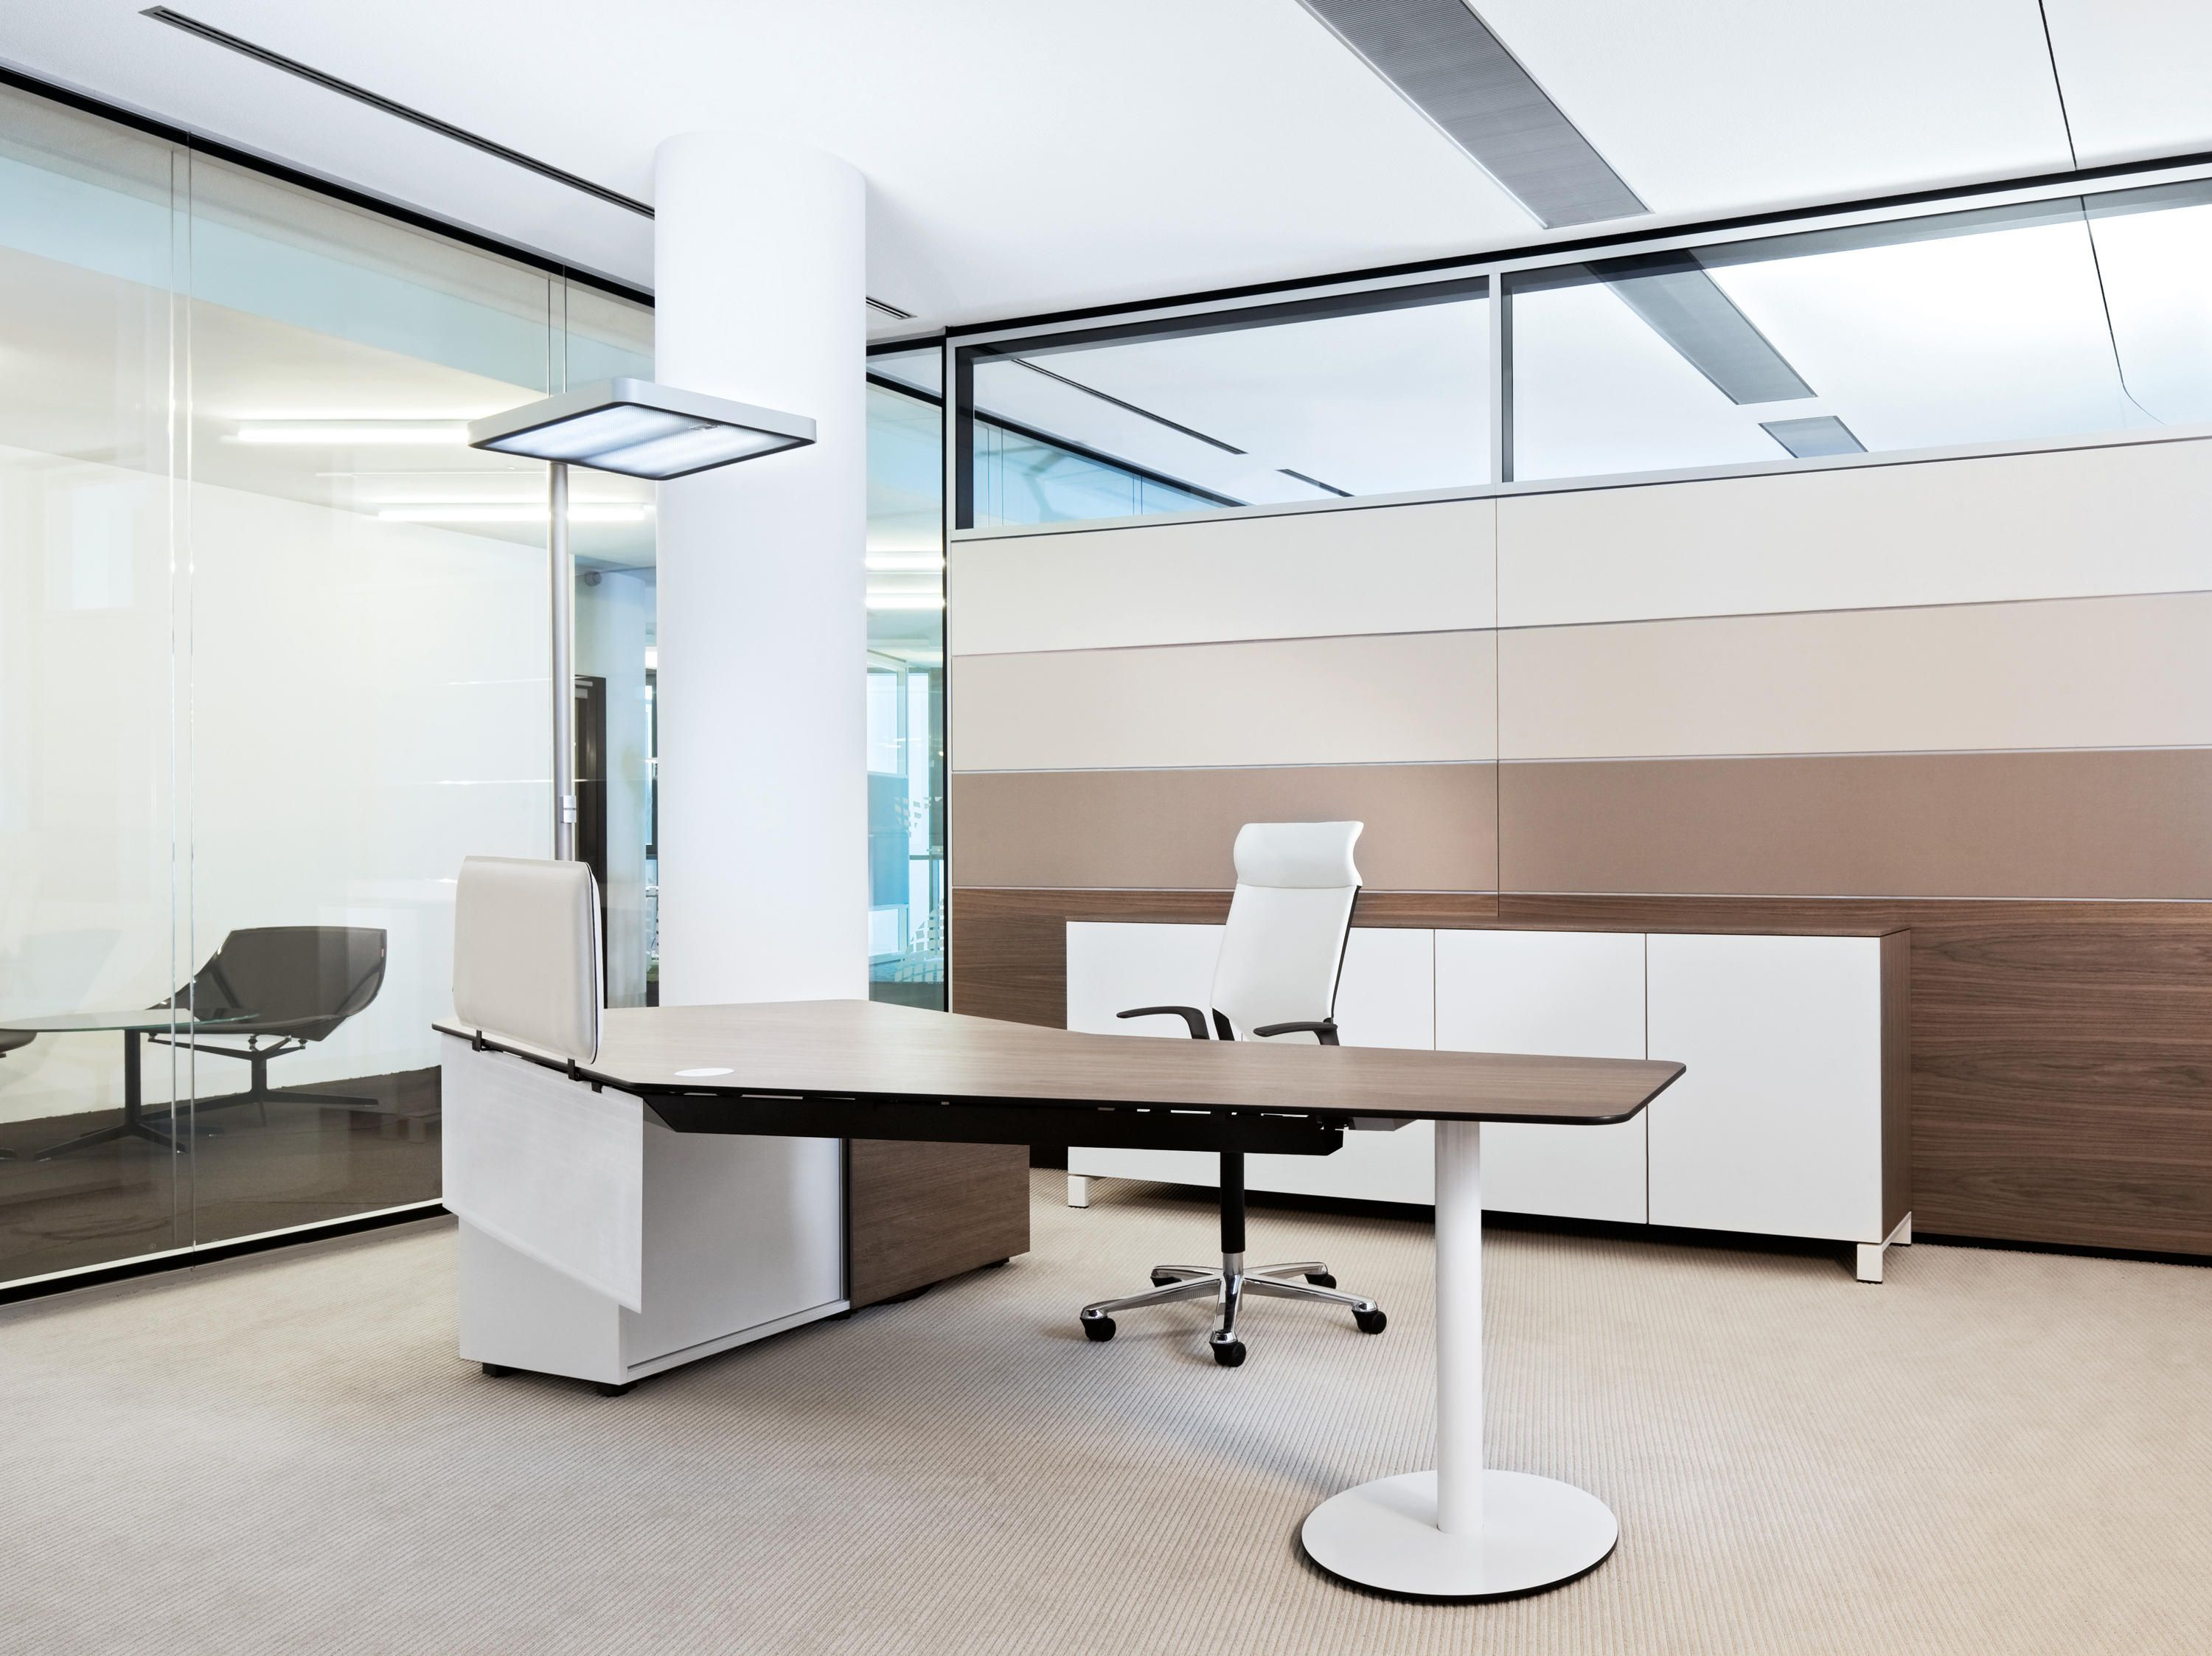 T-Front | Office by Bene | ofis 1 | Pinterest